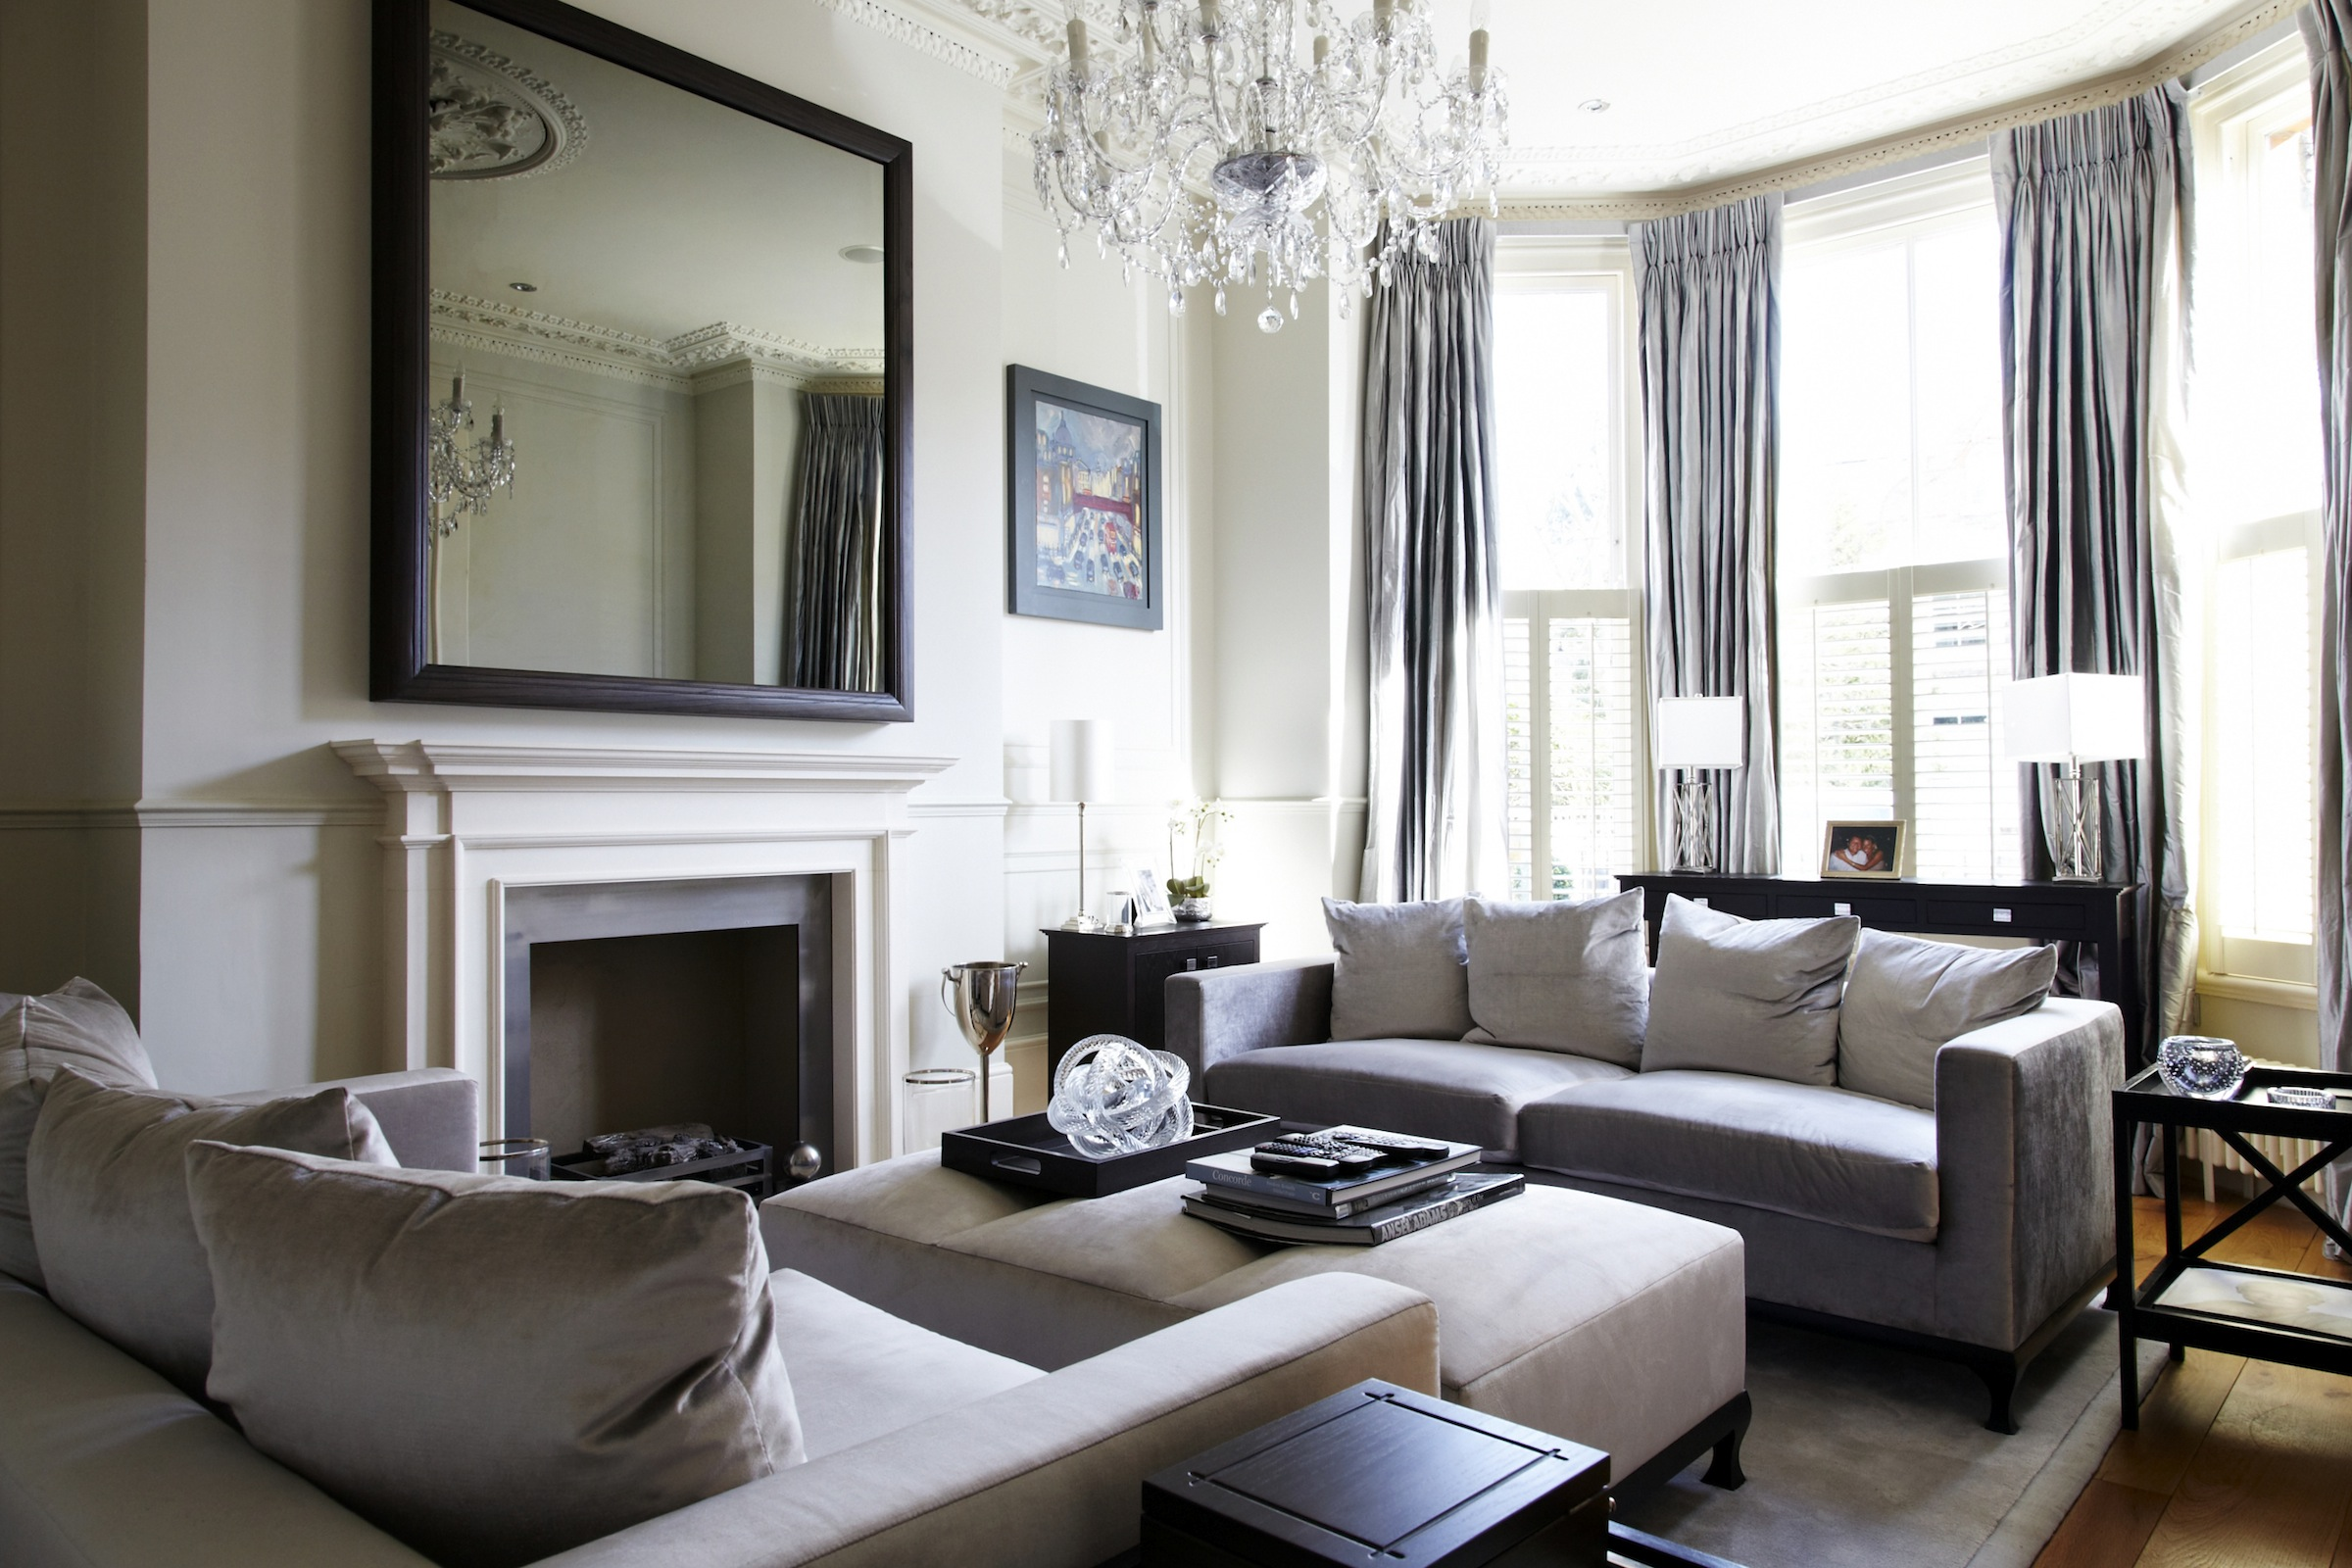 Victorian Chic House With A Modern Twist - Decoholic on Interior Modern House  id=23942